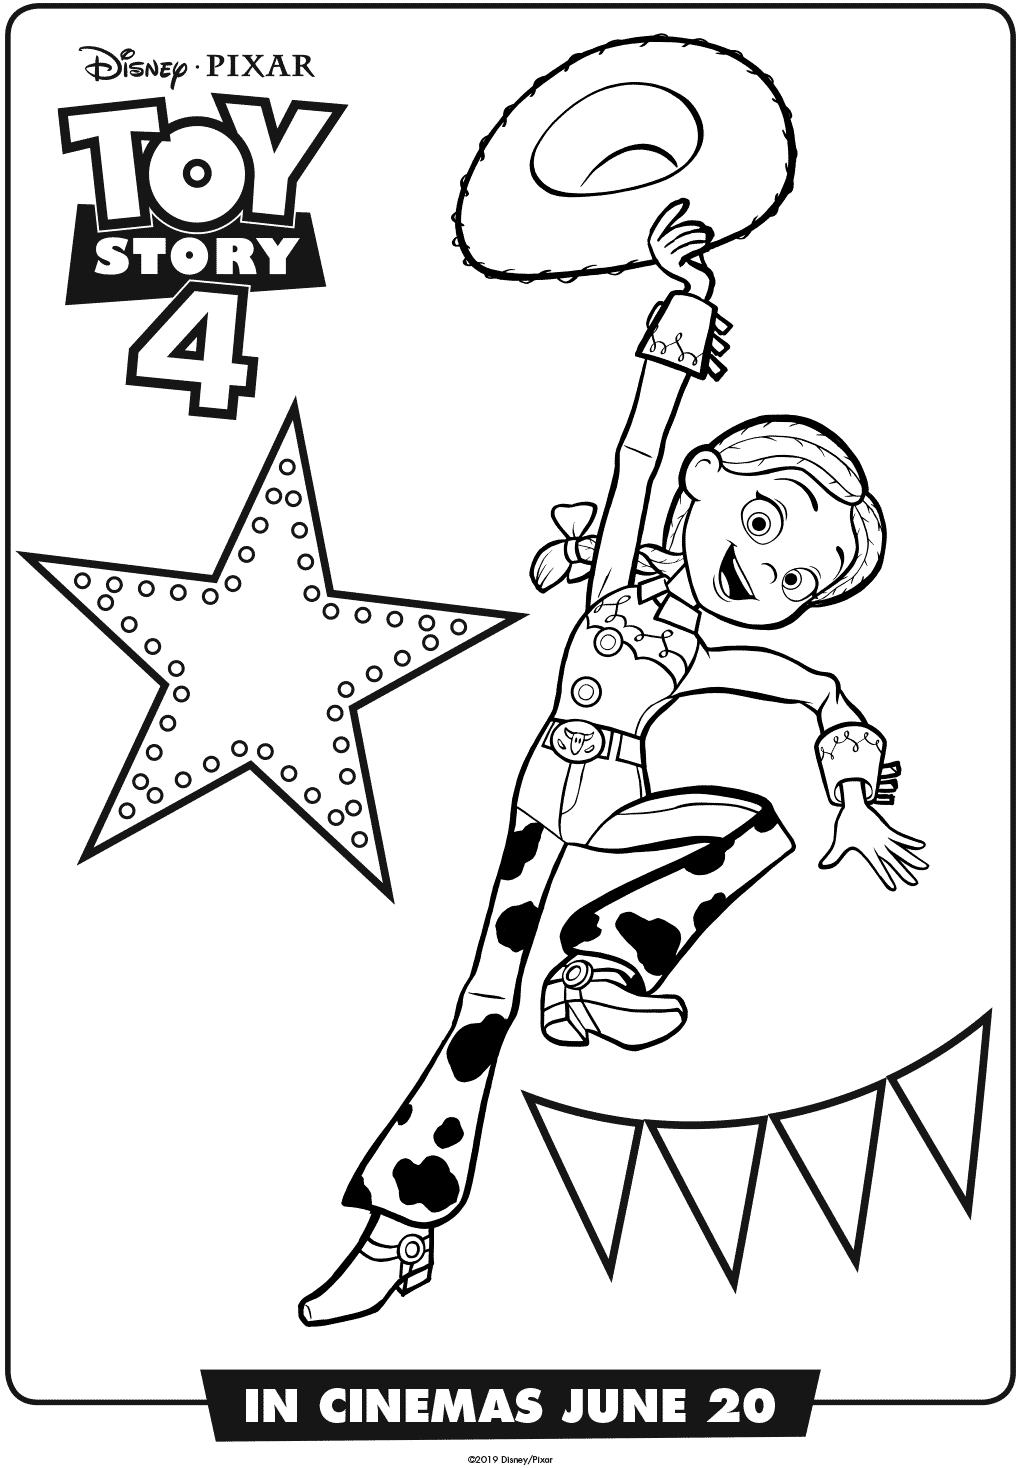 coloring toy story 4 toy story 4 coloring pages for learning toy story 4 toy story 4 coloring